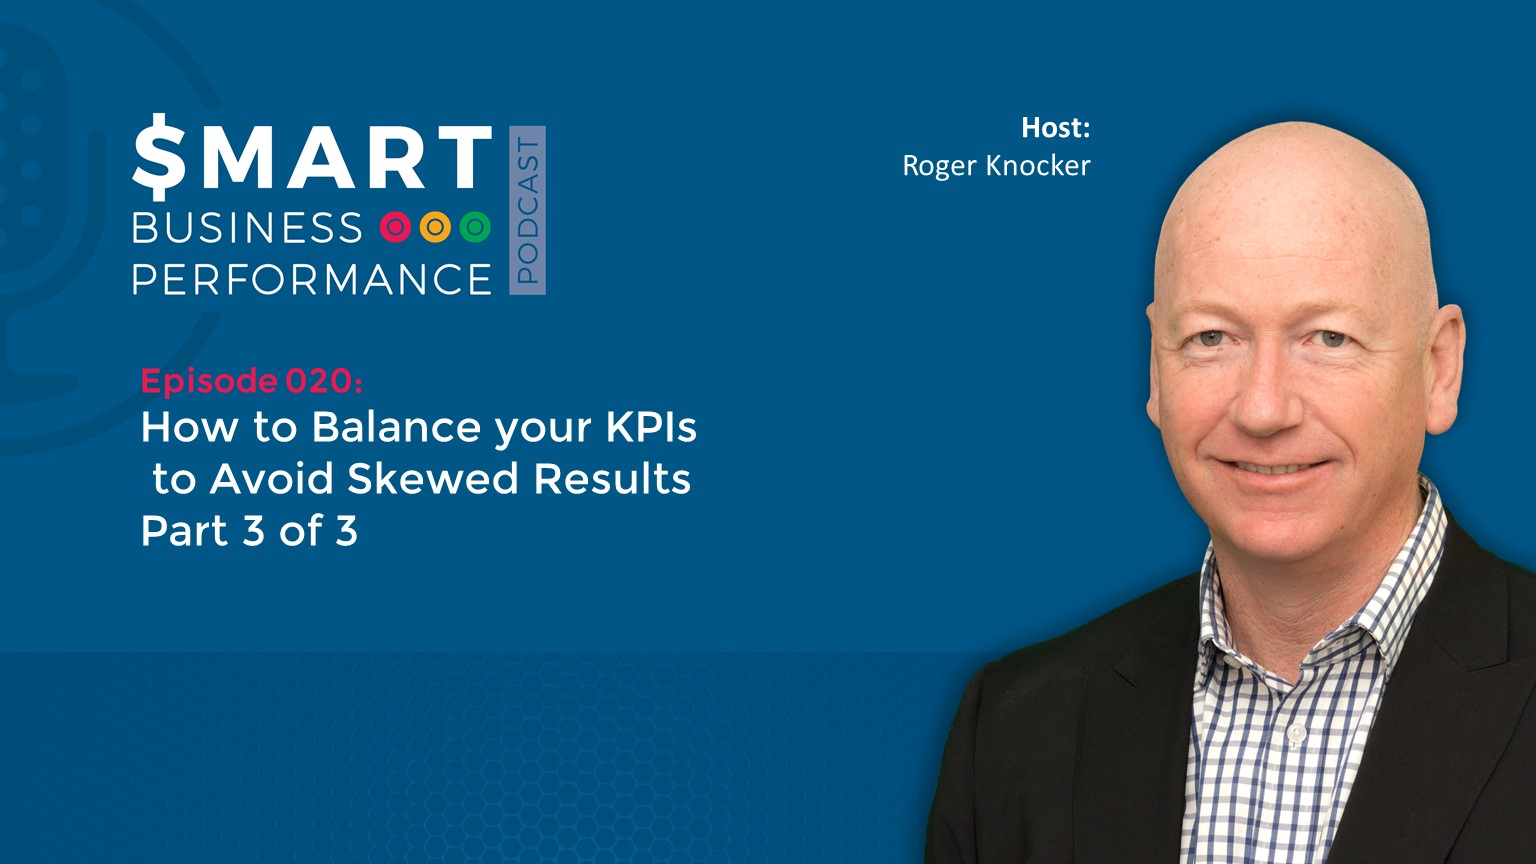 SBP023 How to Balance your KPIs part 3 of 3